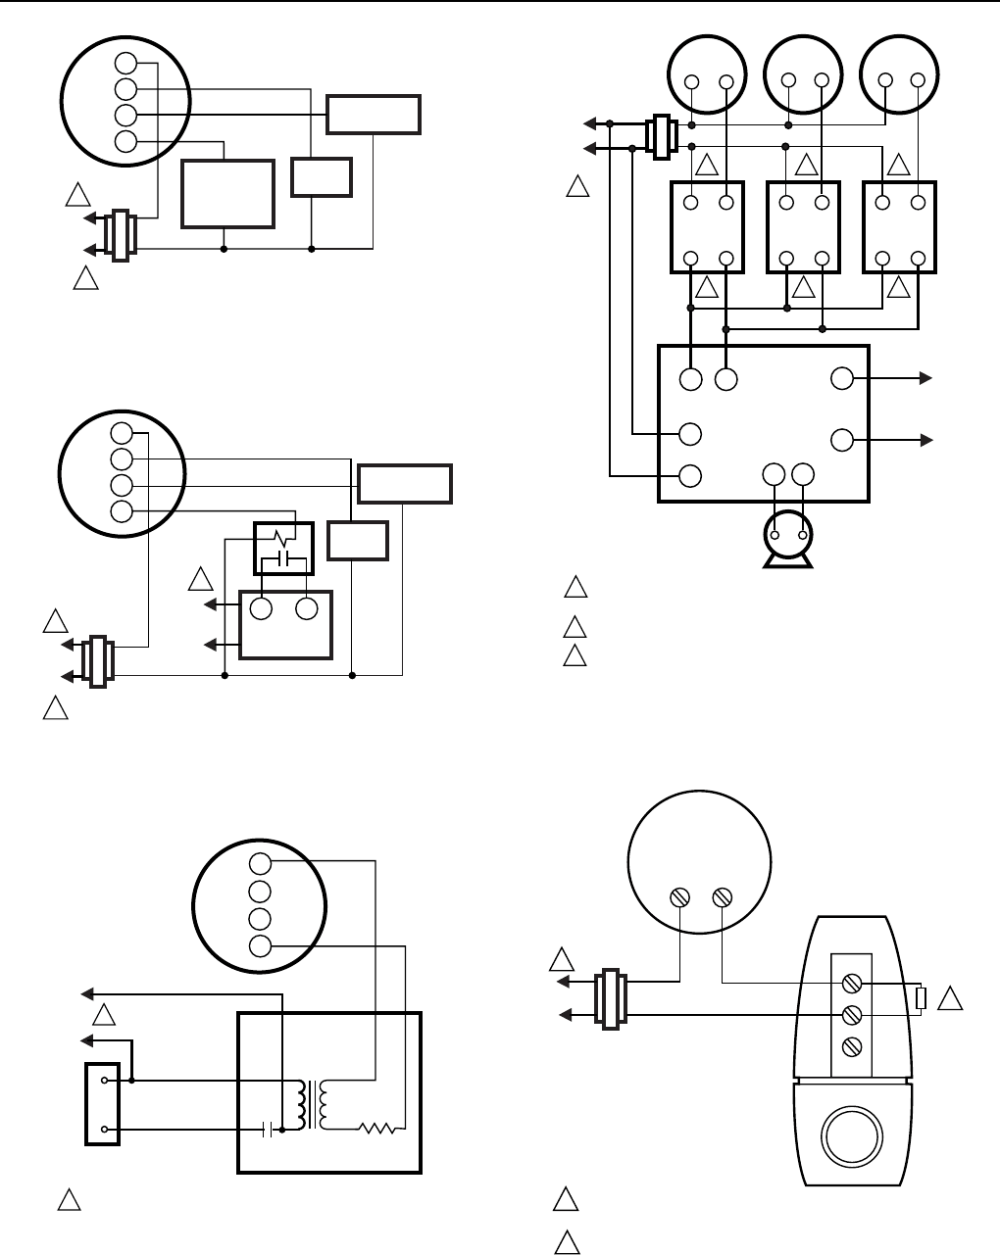 medium resolution of t8700b1007 heat only wiring diagram for controlling 2 wire hot water zone valves